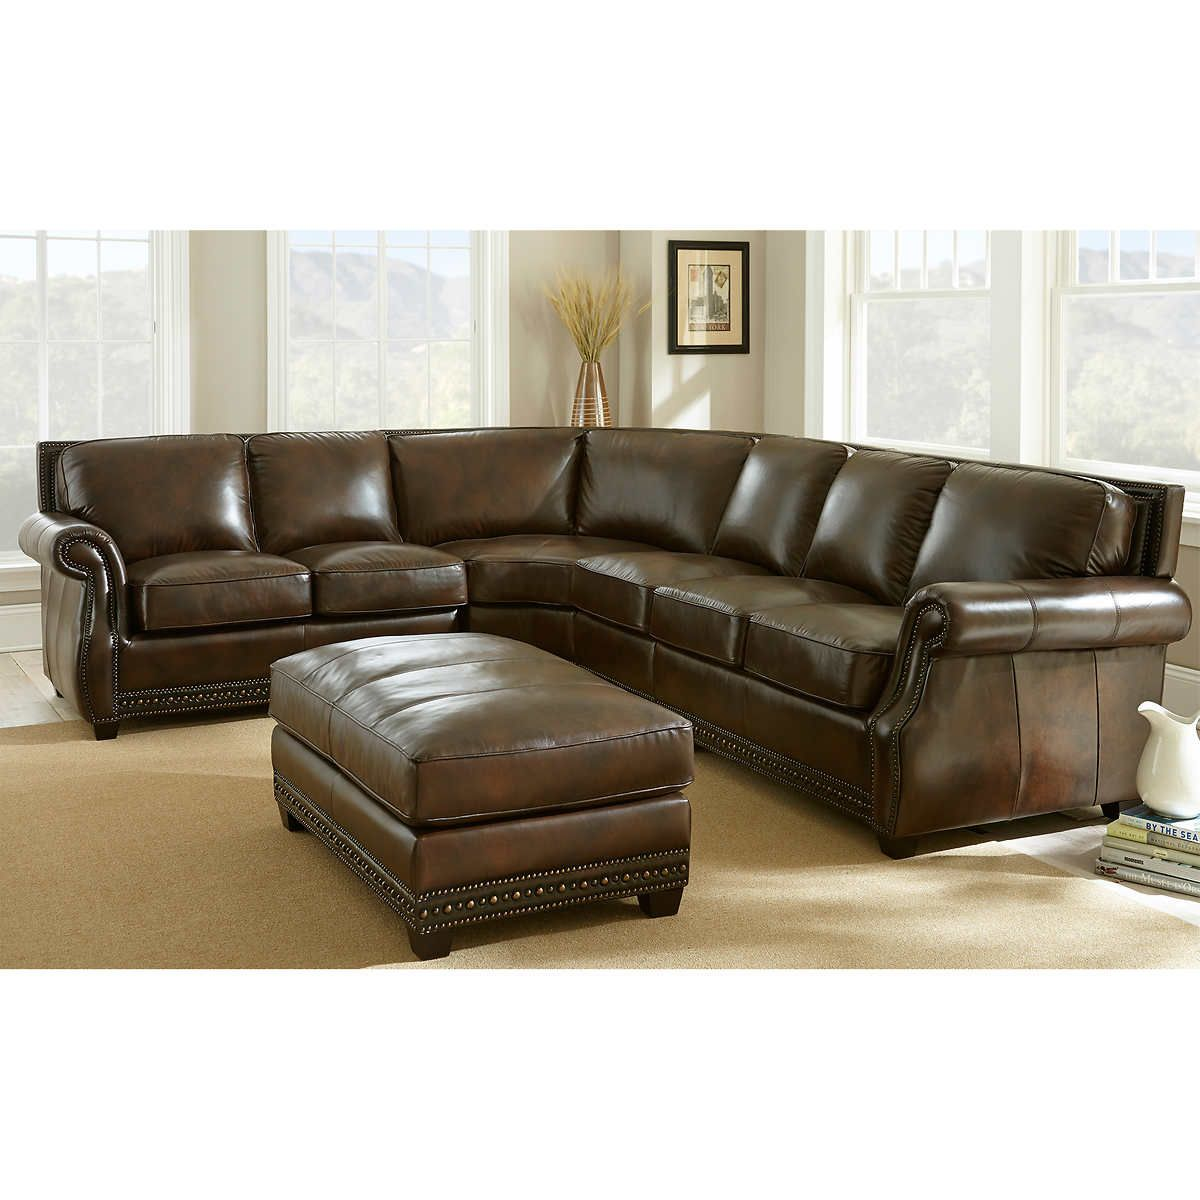 awesome Leather Couch Sectional New Leather Couch Sectional 64